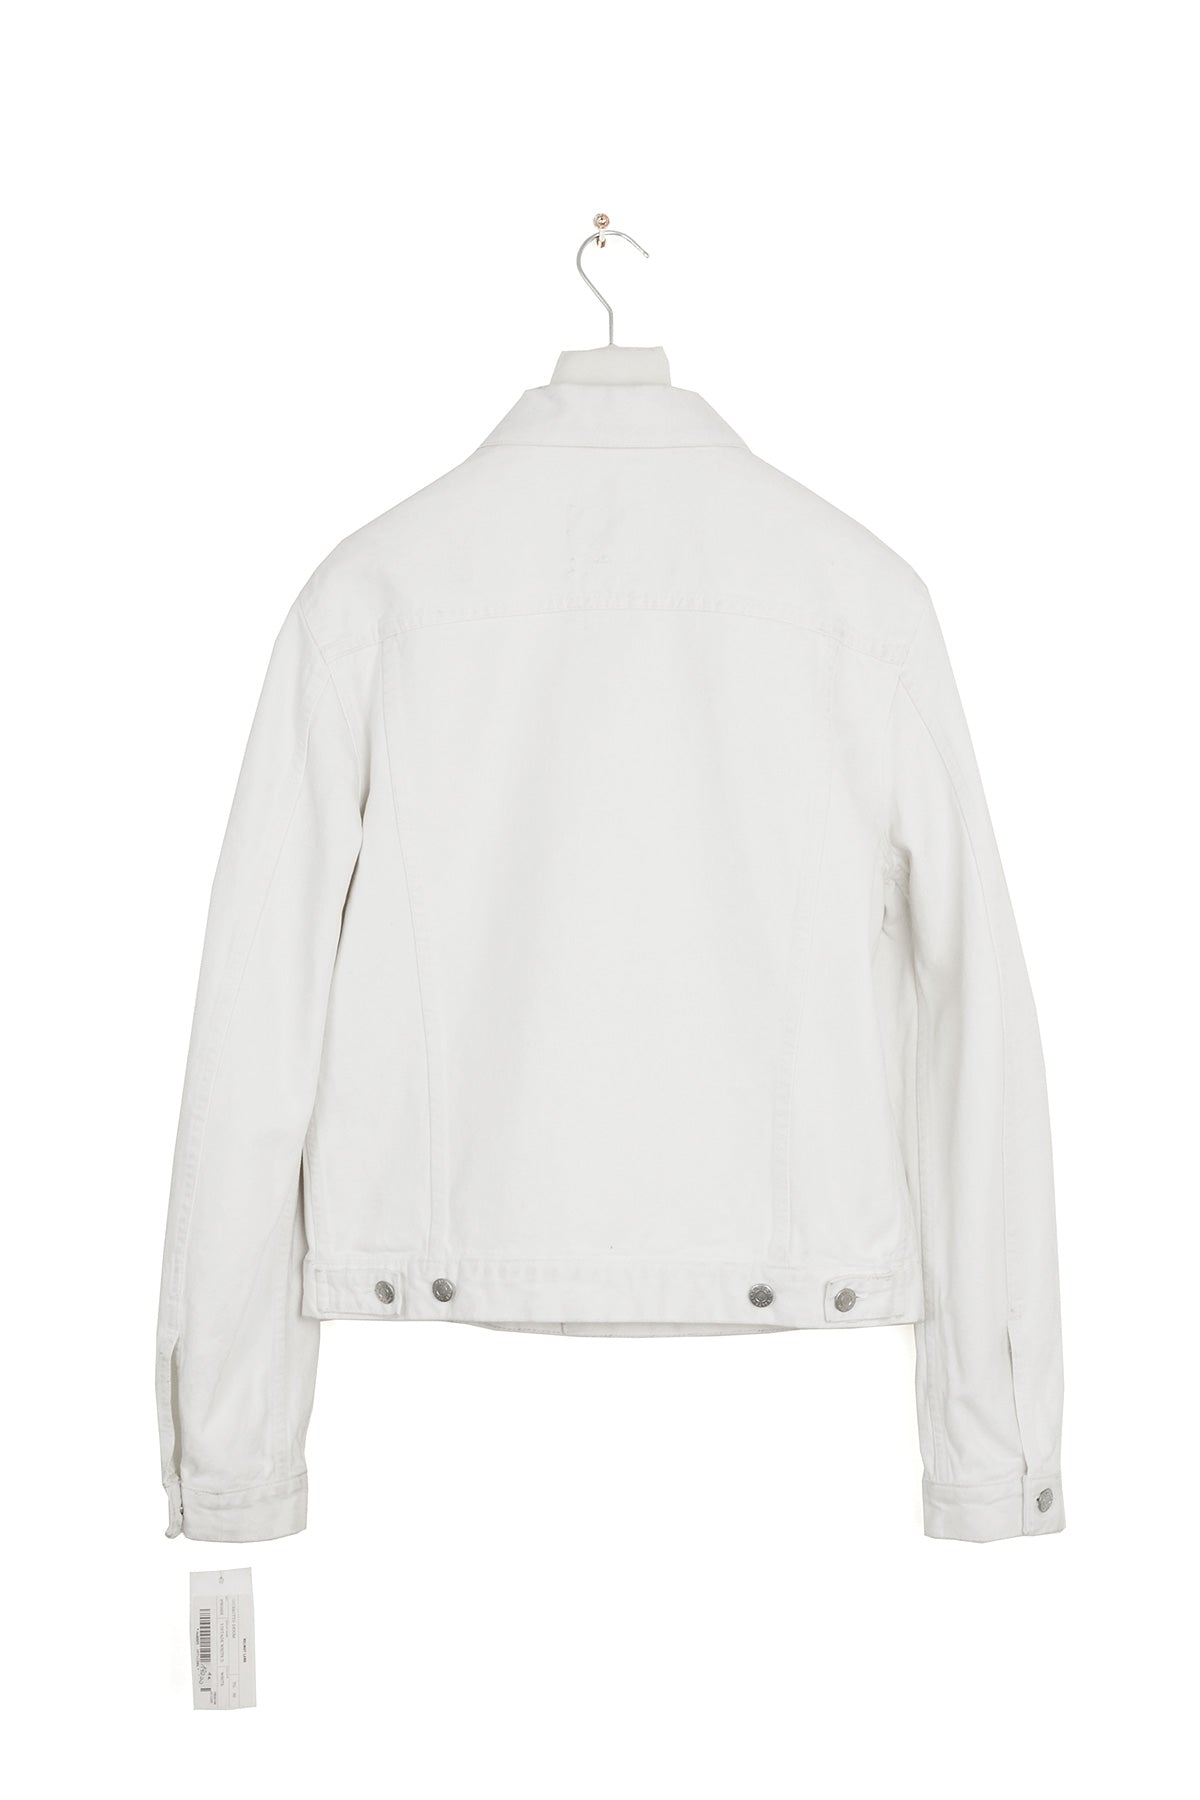 2002 S/S SLIM 2 POCKET JACKET IN WHITE DENIM